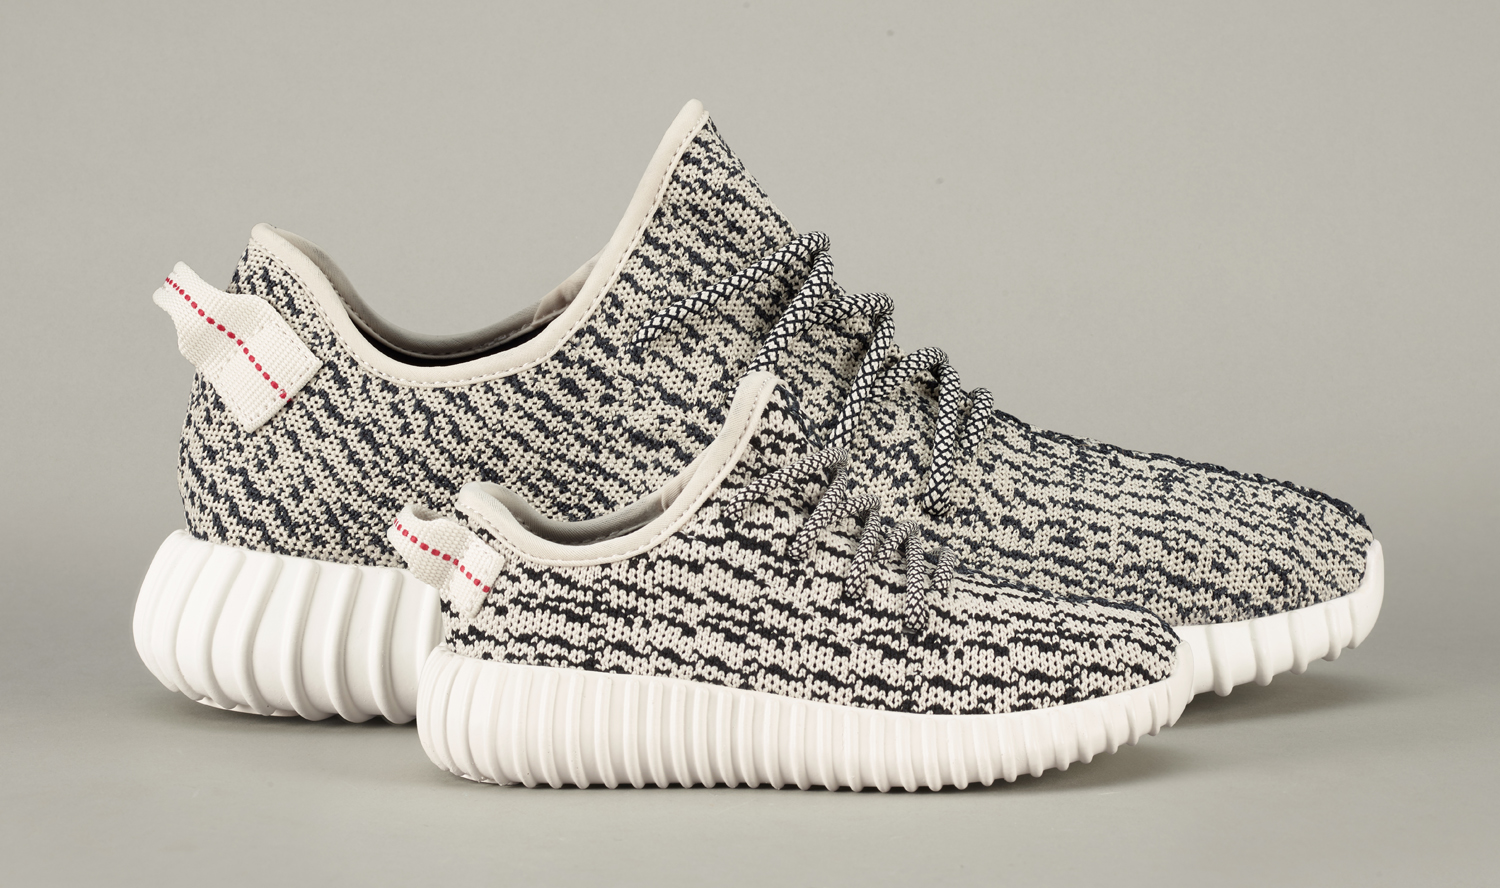 sports shoes fc37d 75b0c Infant Adidas Yeezy 350 Boost Price | Sole Collector